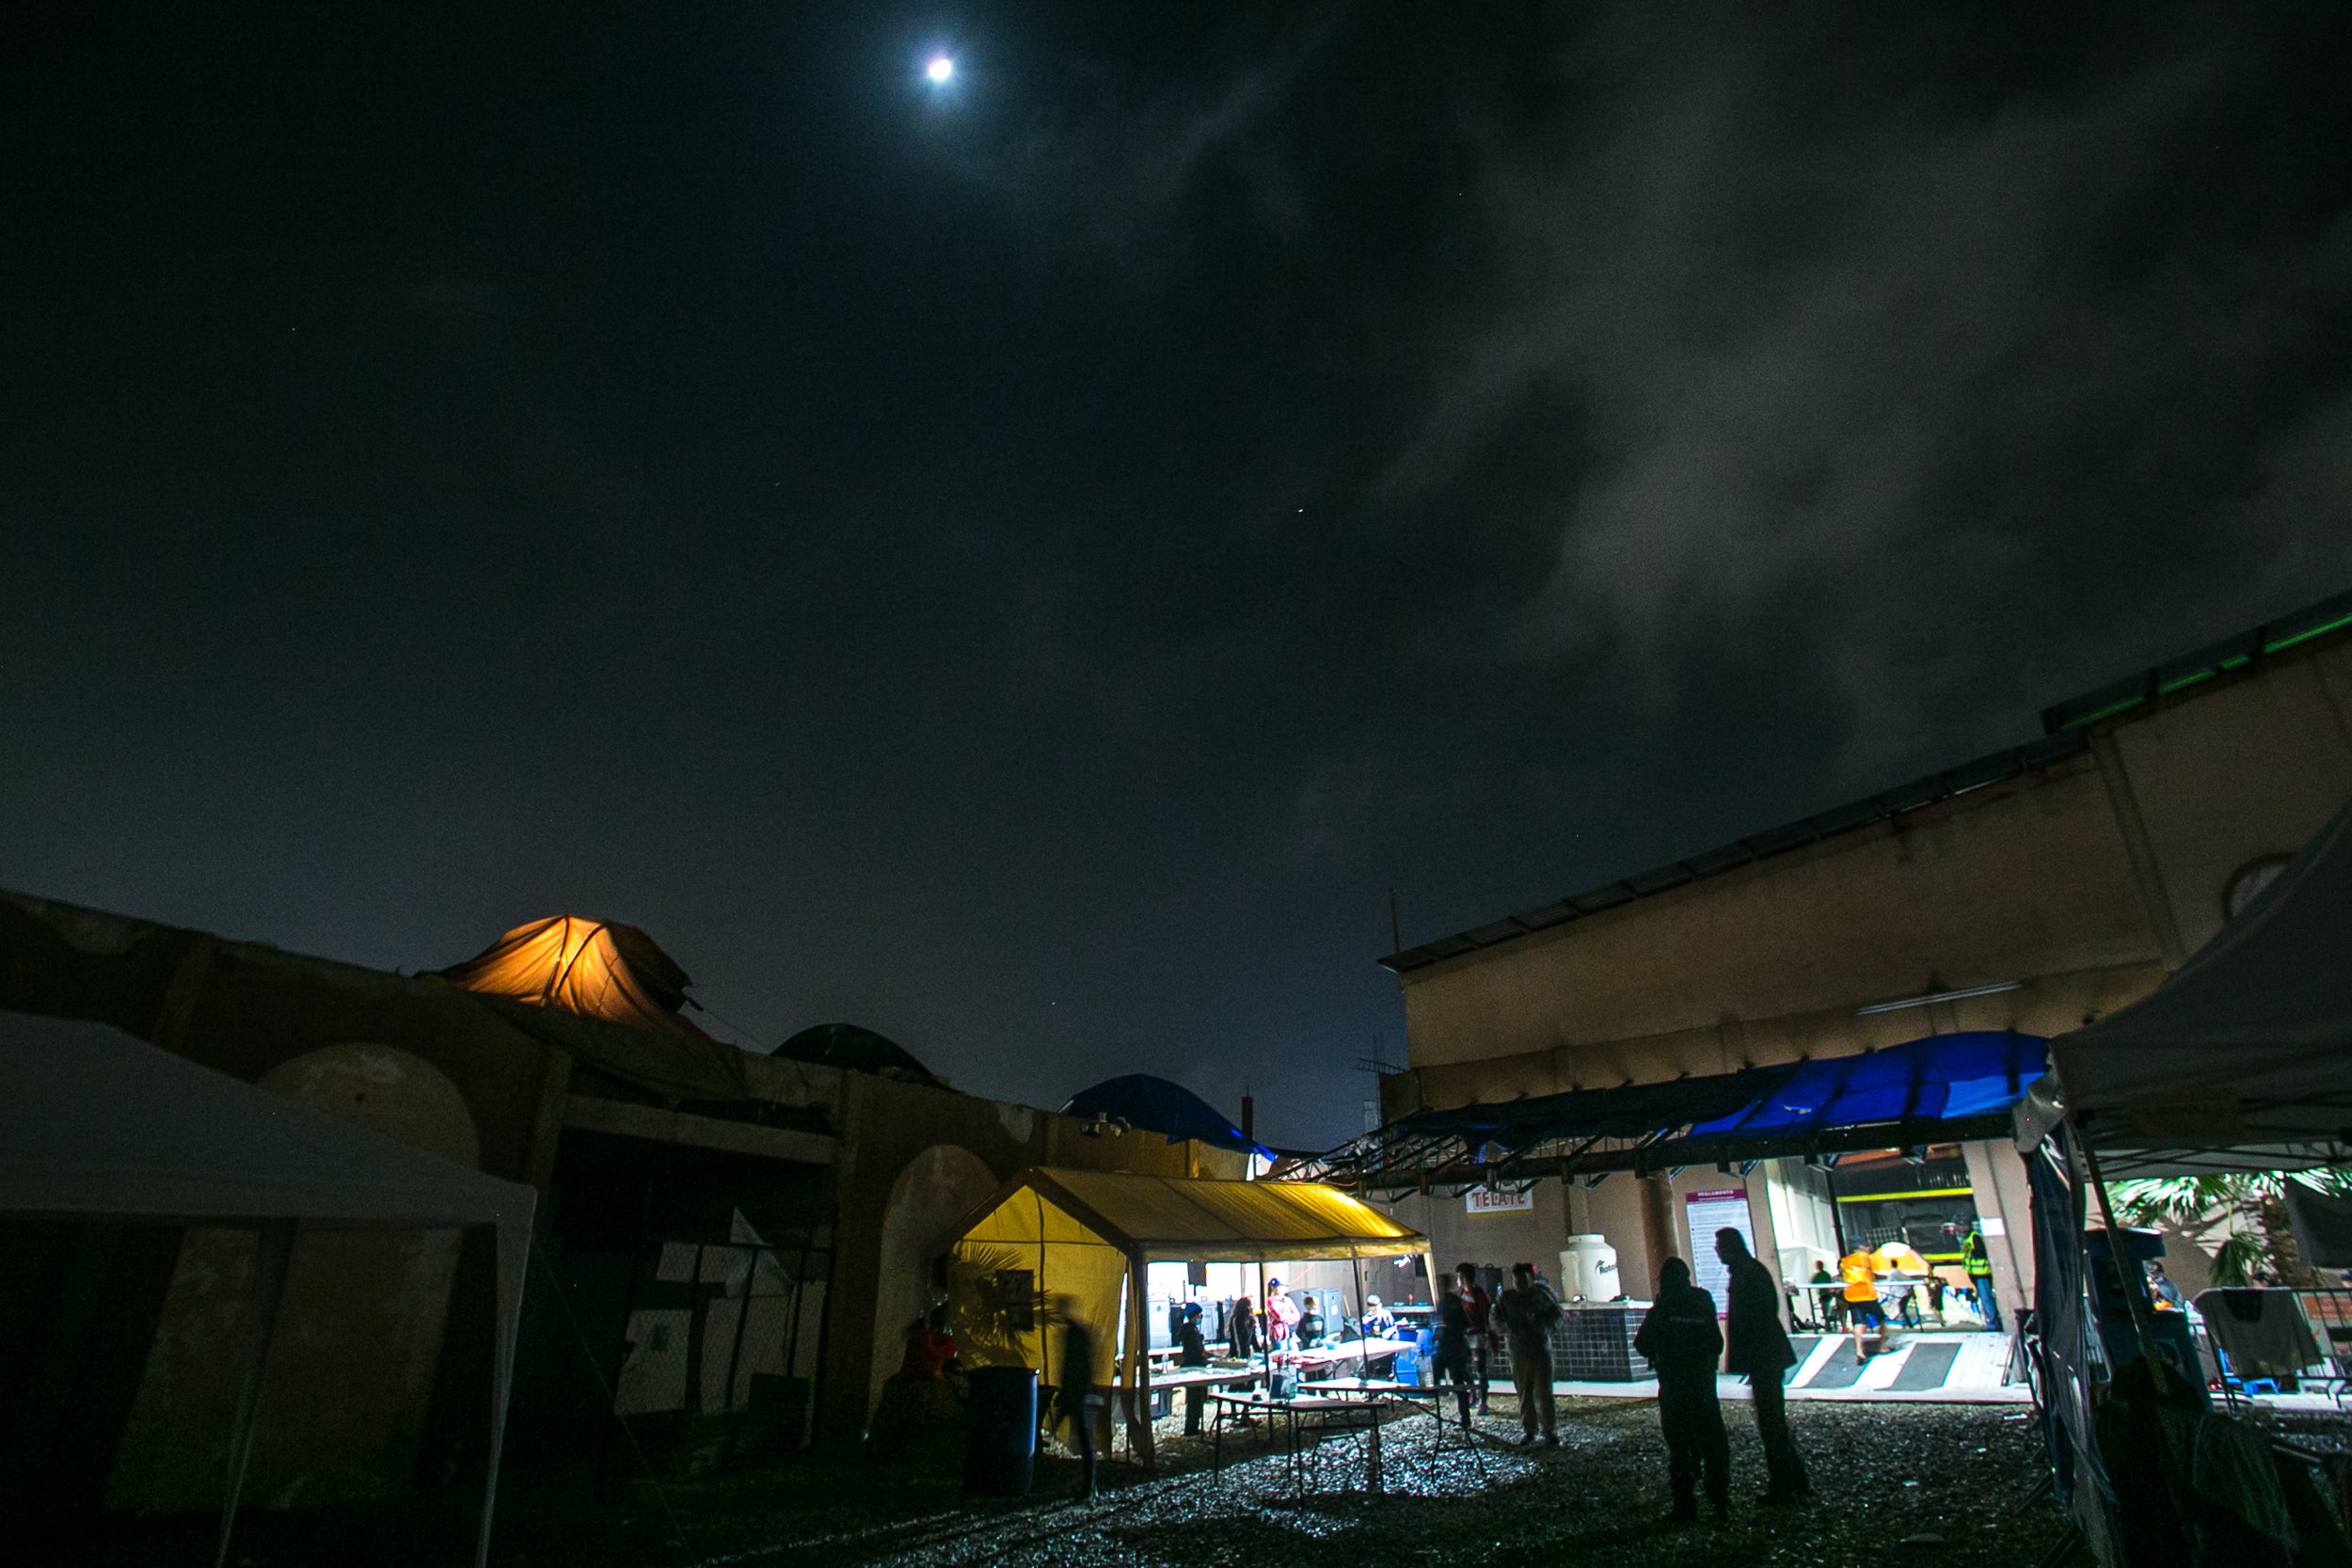 An illuminated tent is silhouetted against the night sky in the Barretal refugee camp outside of Tijuana, Mexico.